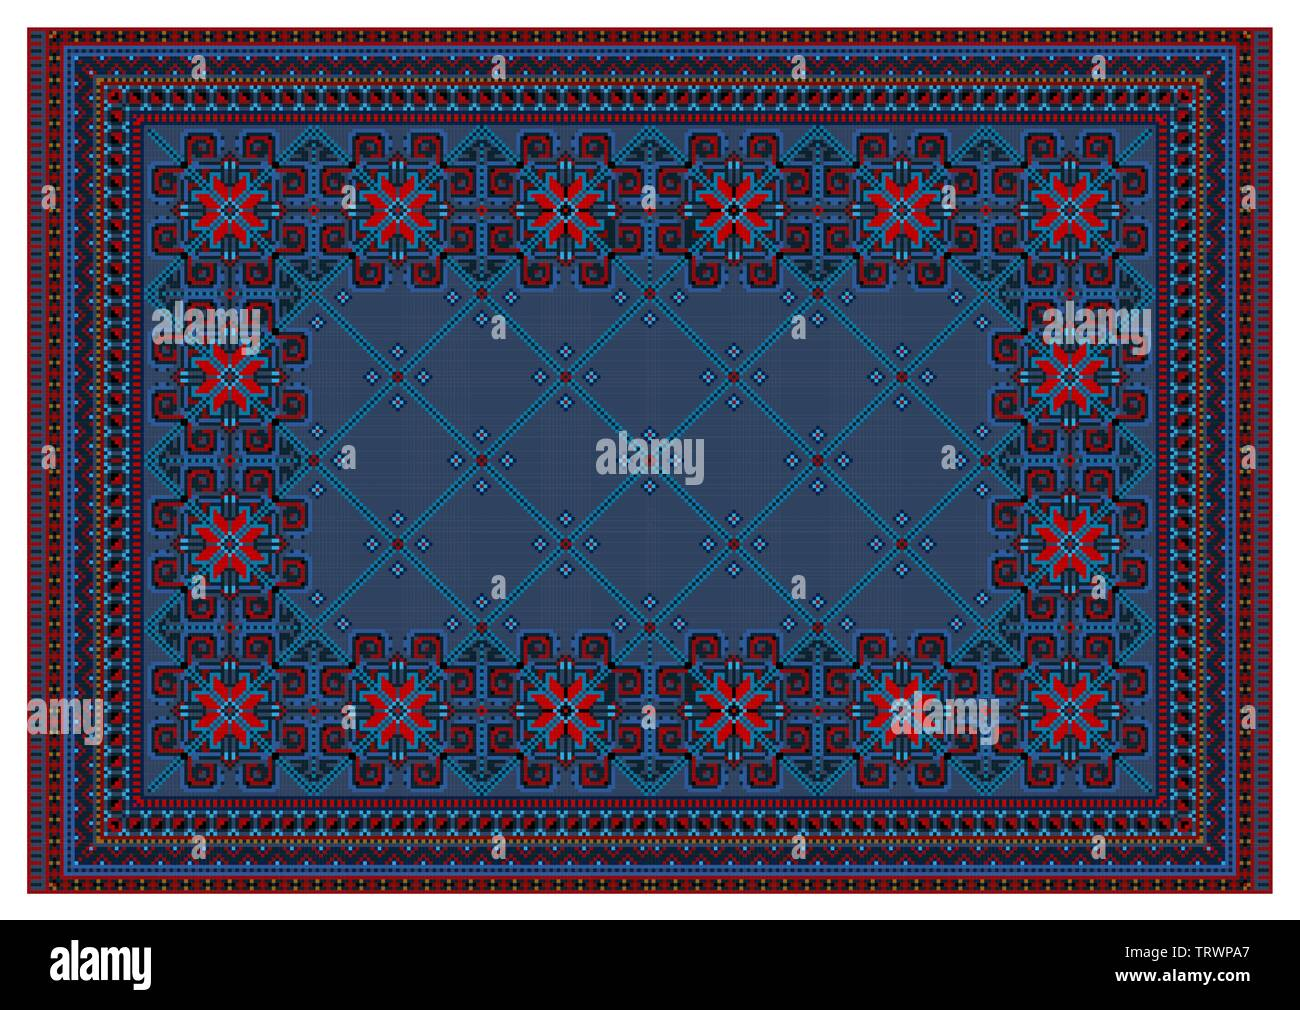 Pattern for old oriental carpet in blue and red colors with intersecting bluish stripes run down the center - Stock Image